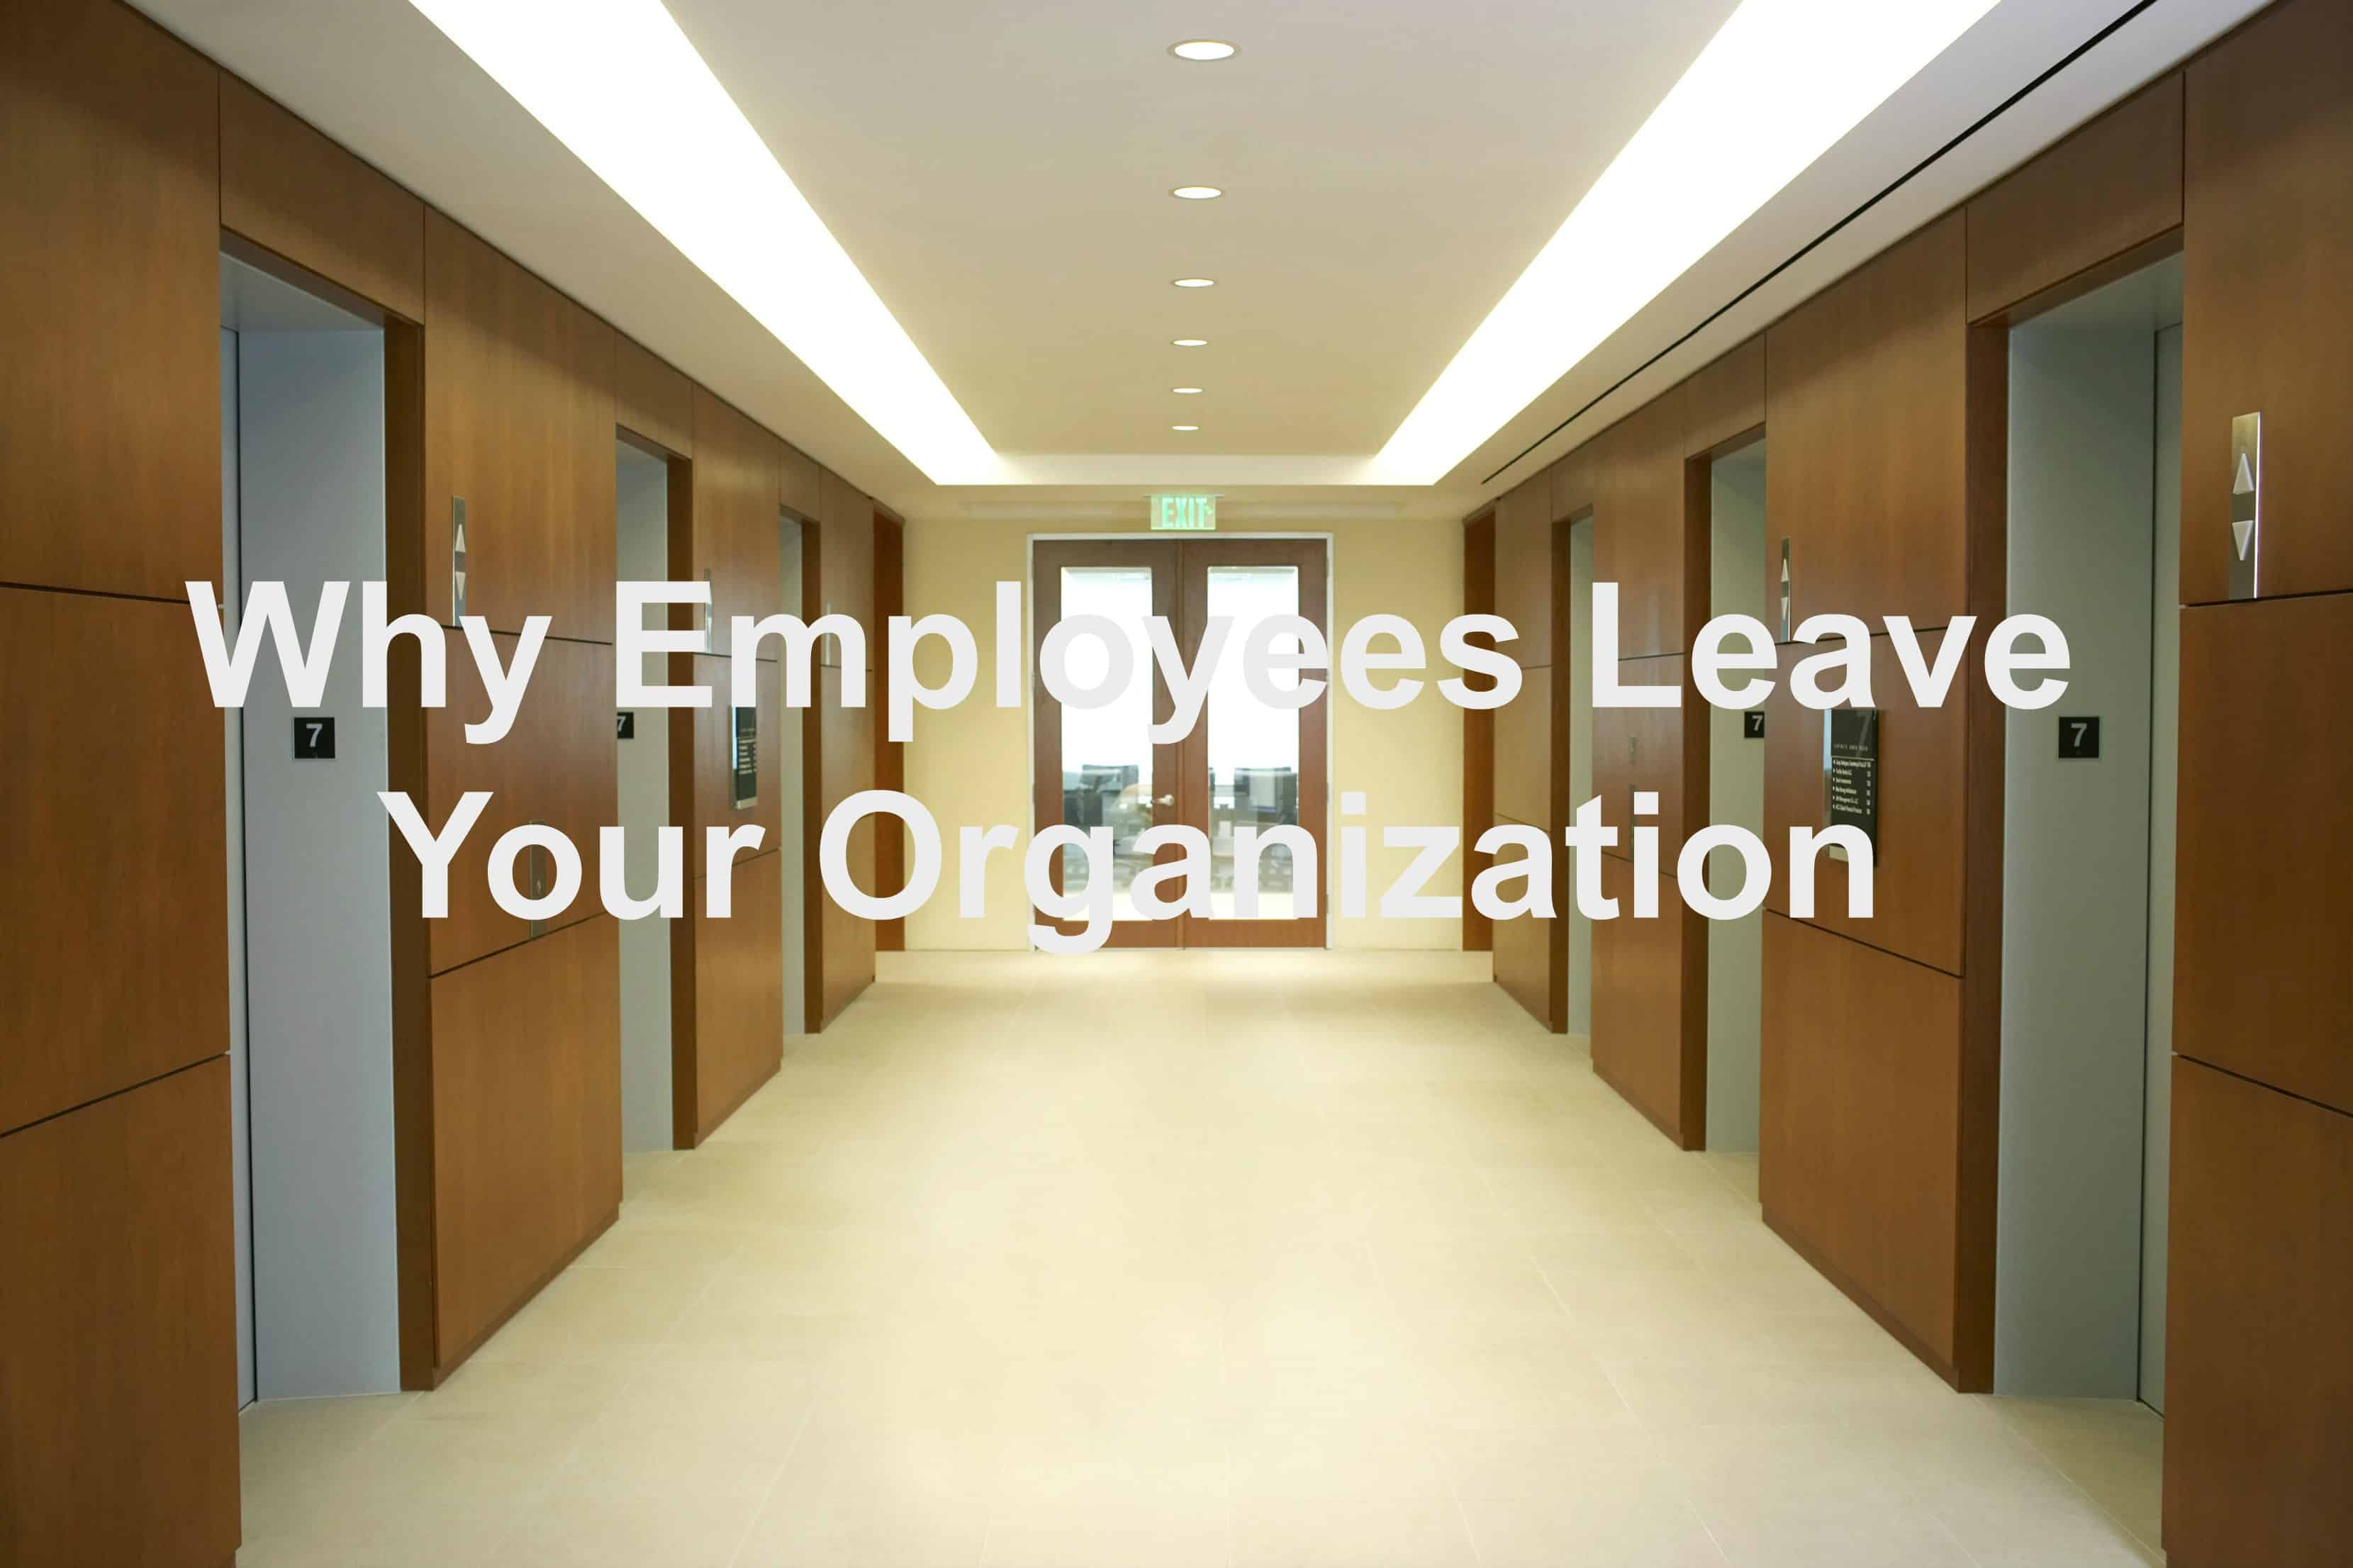 Employees leave for varying reasons